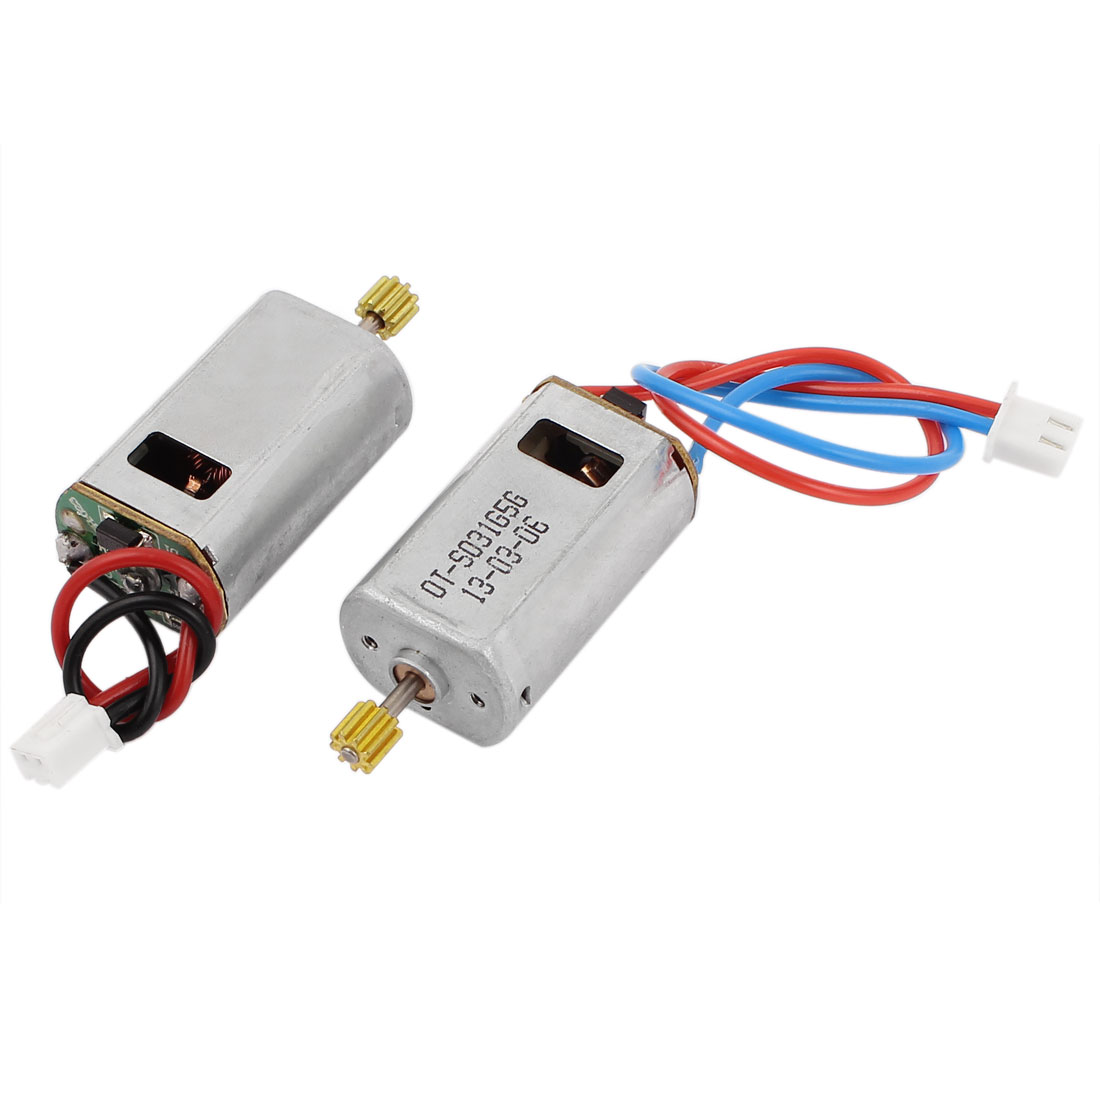 2 Pcs DC 7.4V 74000RPM Electric Toys Motor Repair Parts for Syma SO31G RC Airplane